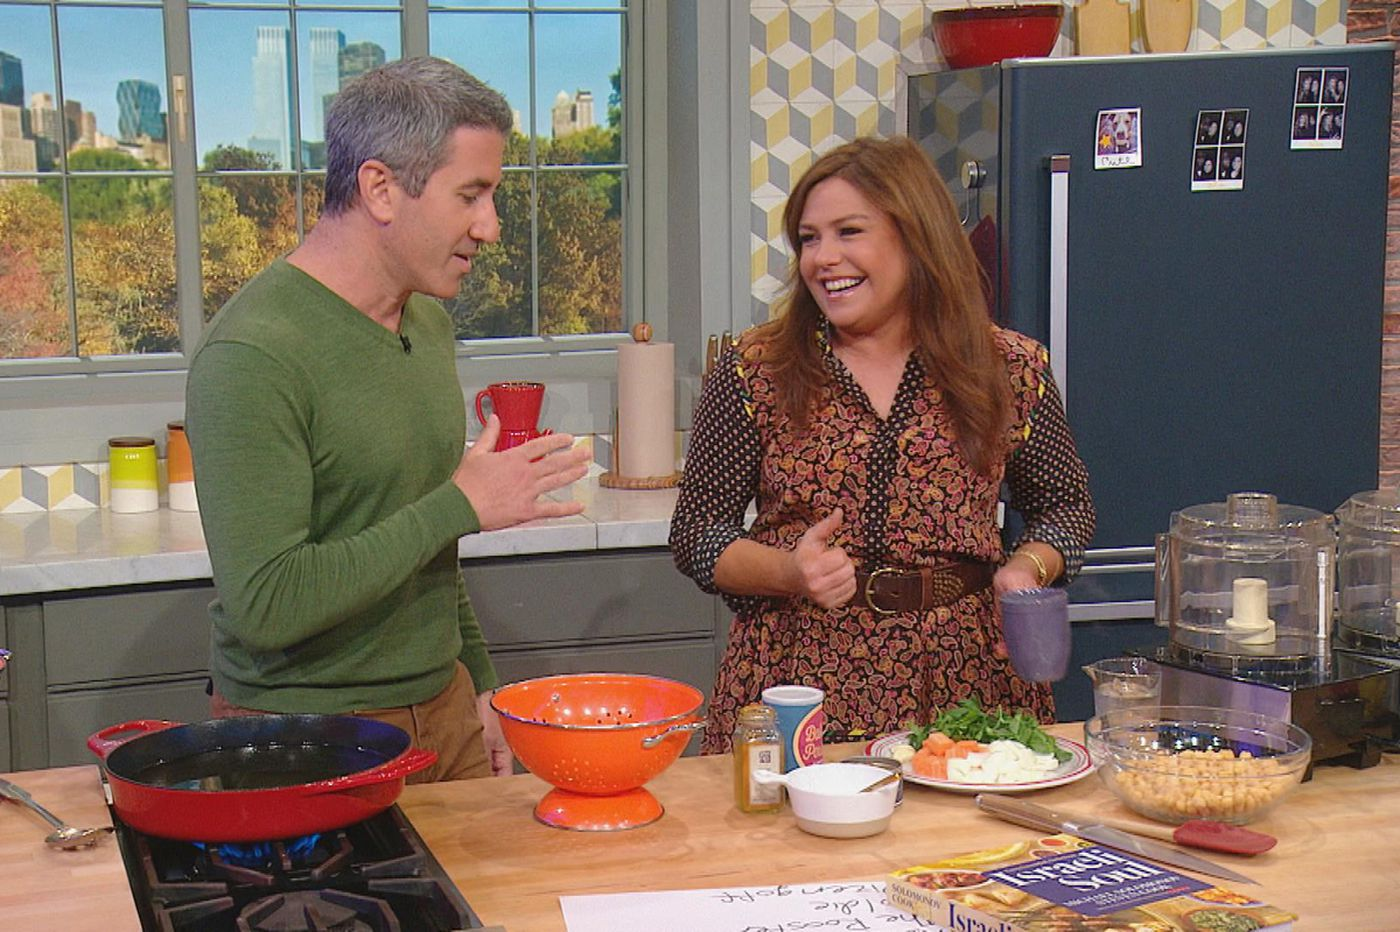 Catch Mike Solomonov frying falafel with Rachael Ray